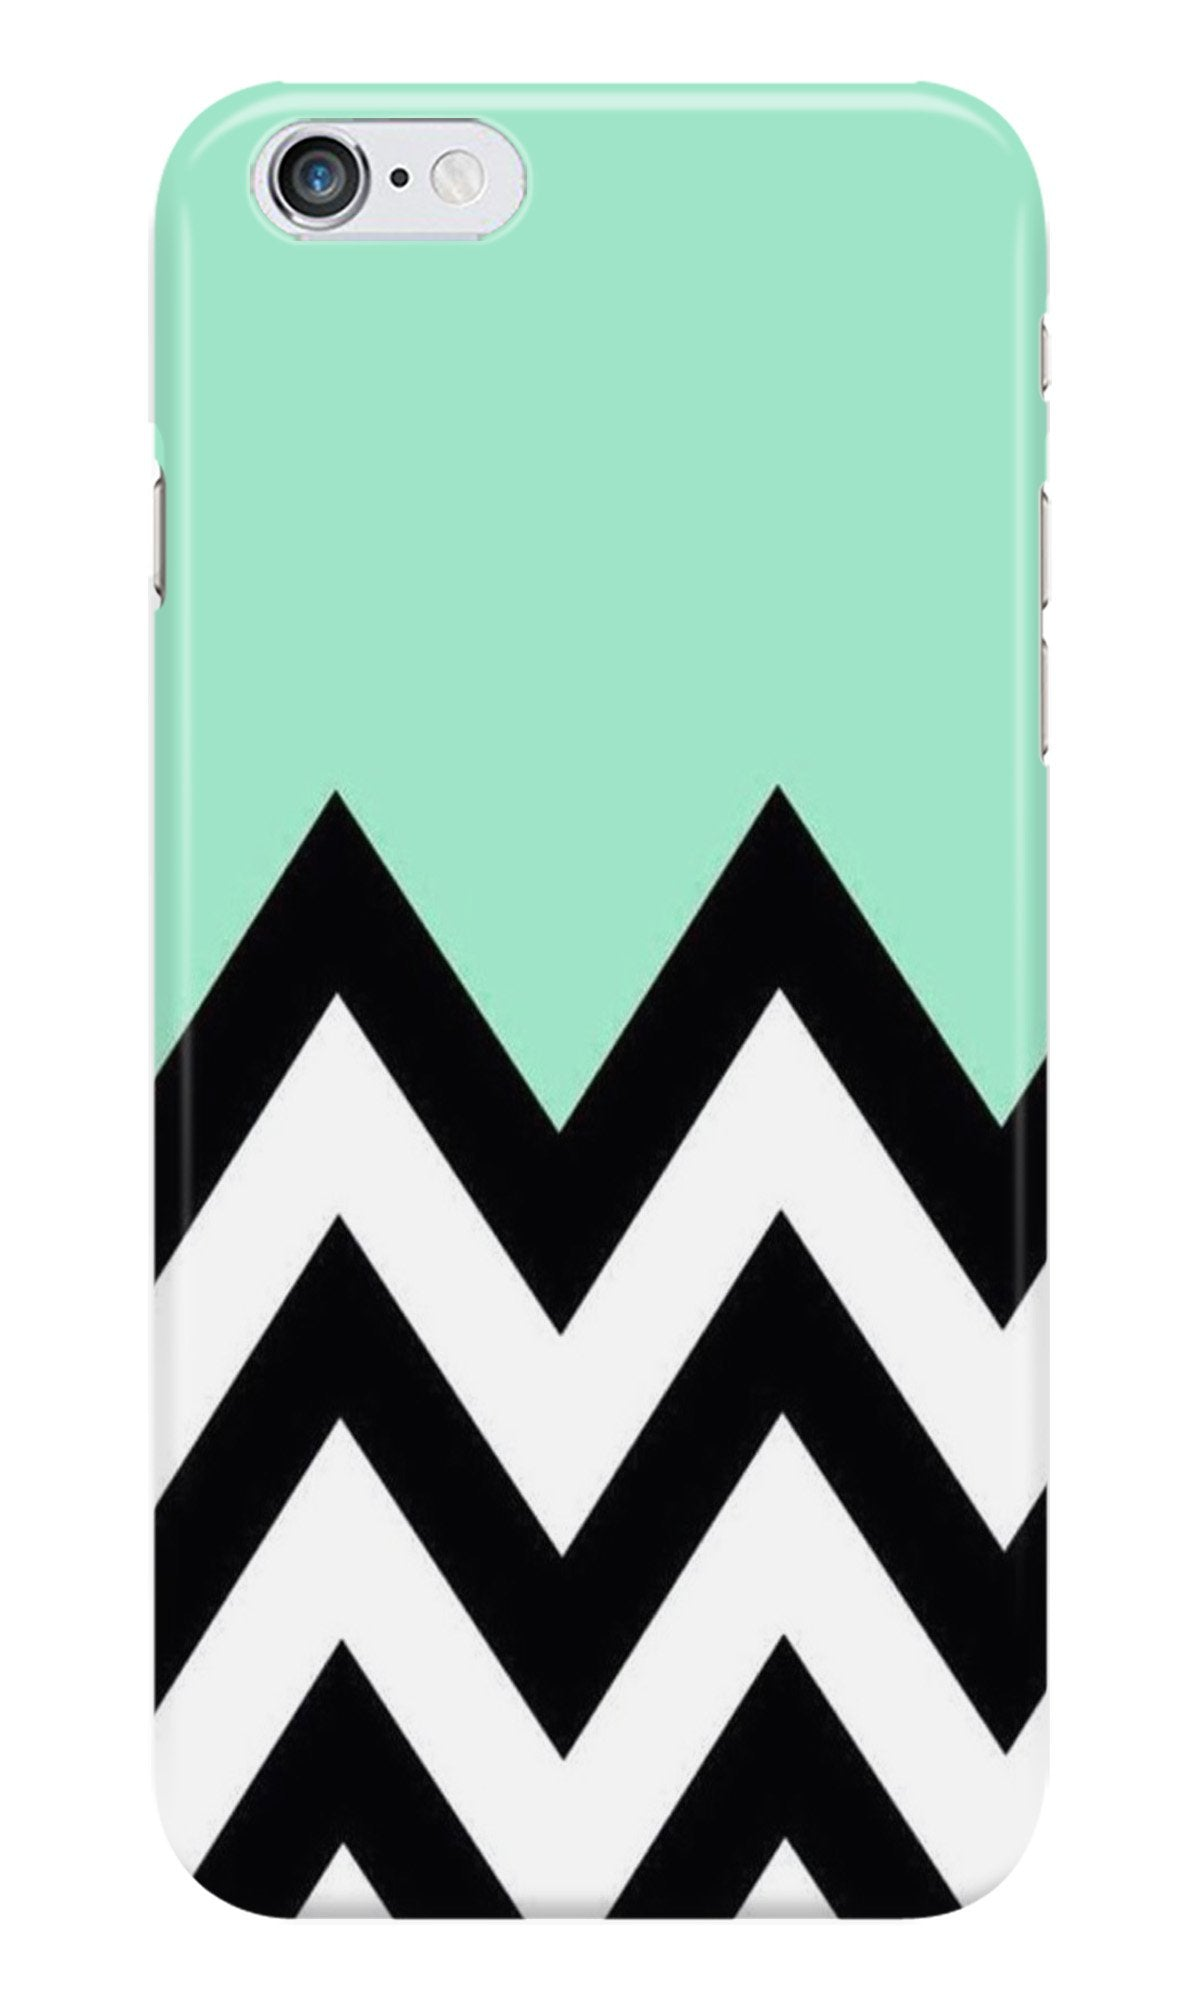 Pattern Case for iPhone 6/ 6s